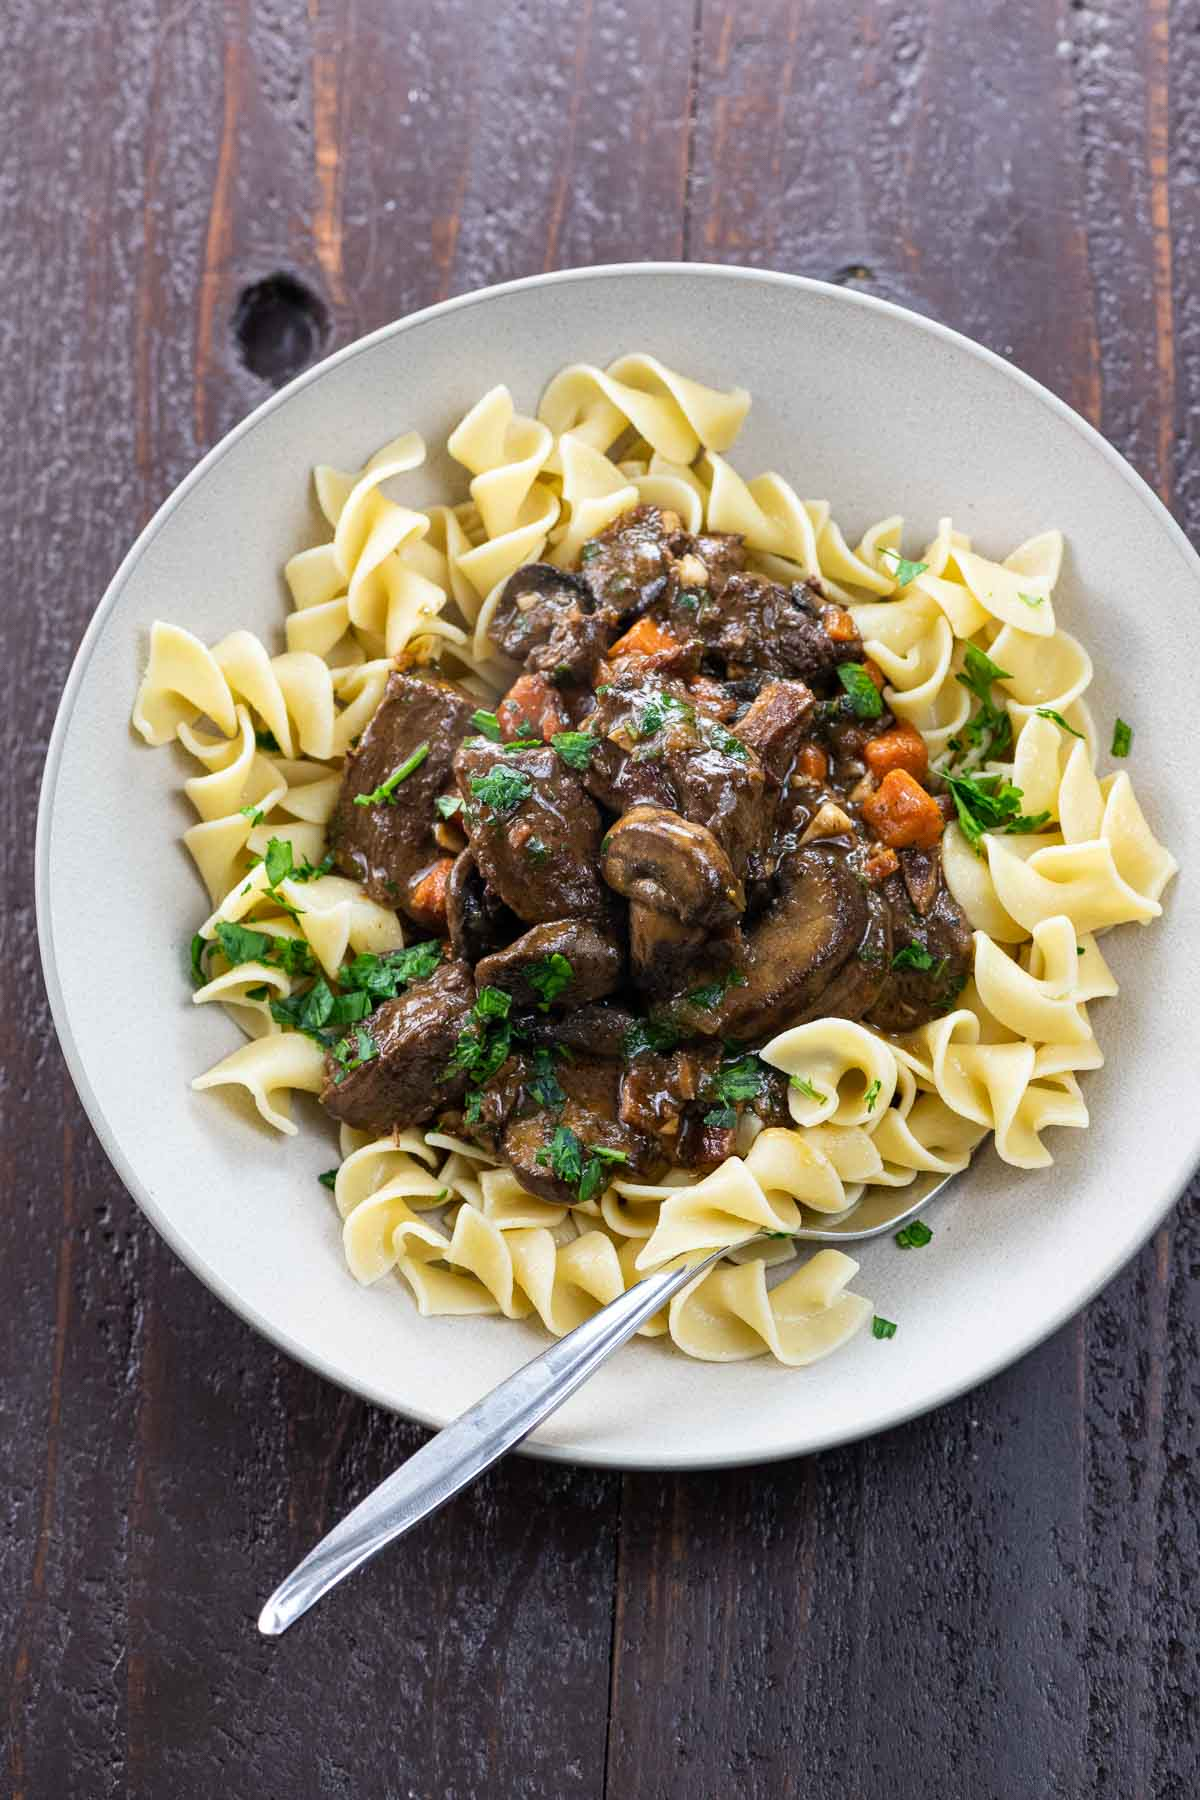 bouef bourguignon over egg noodles in a bowl with a fork